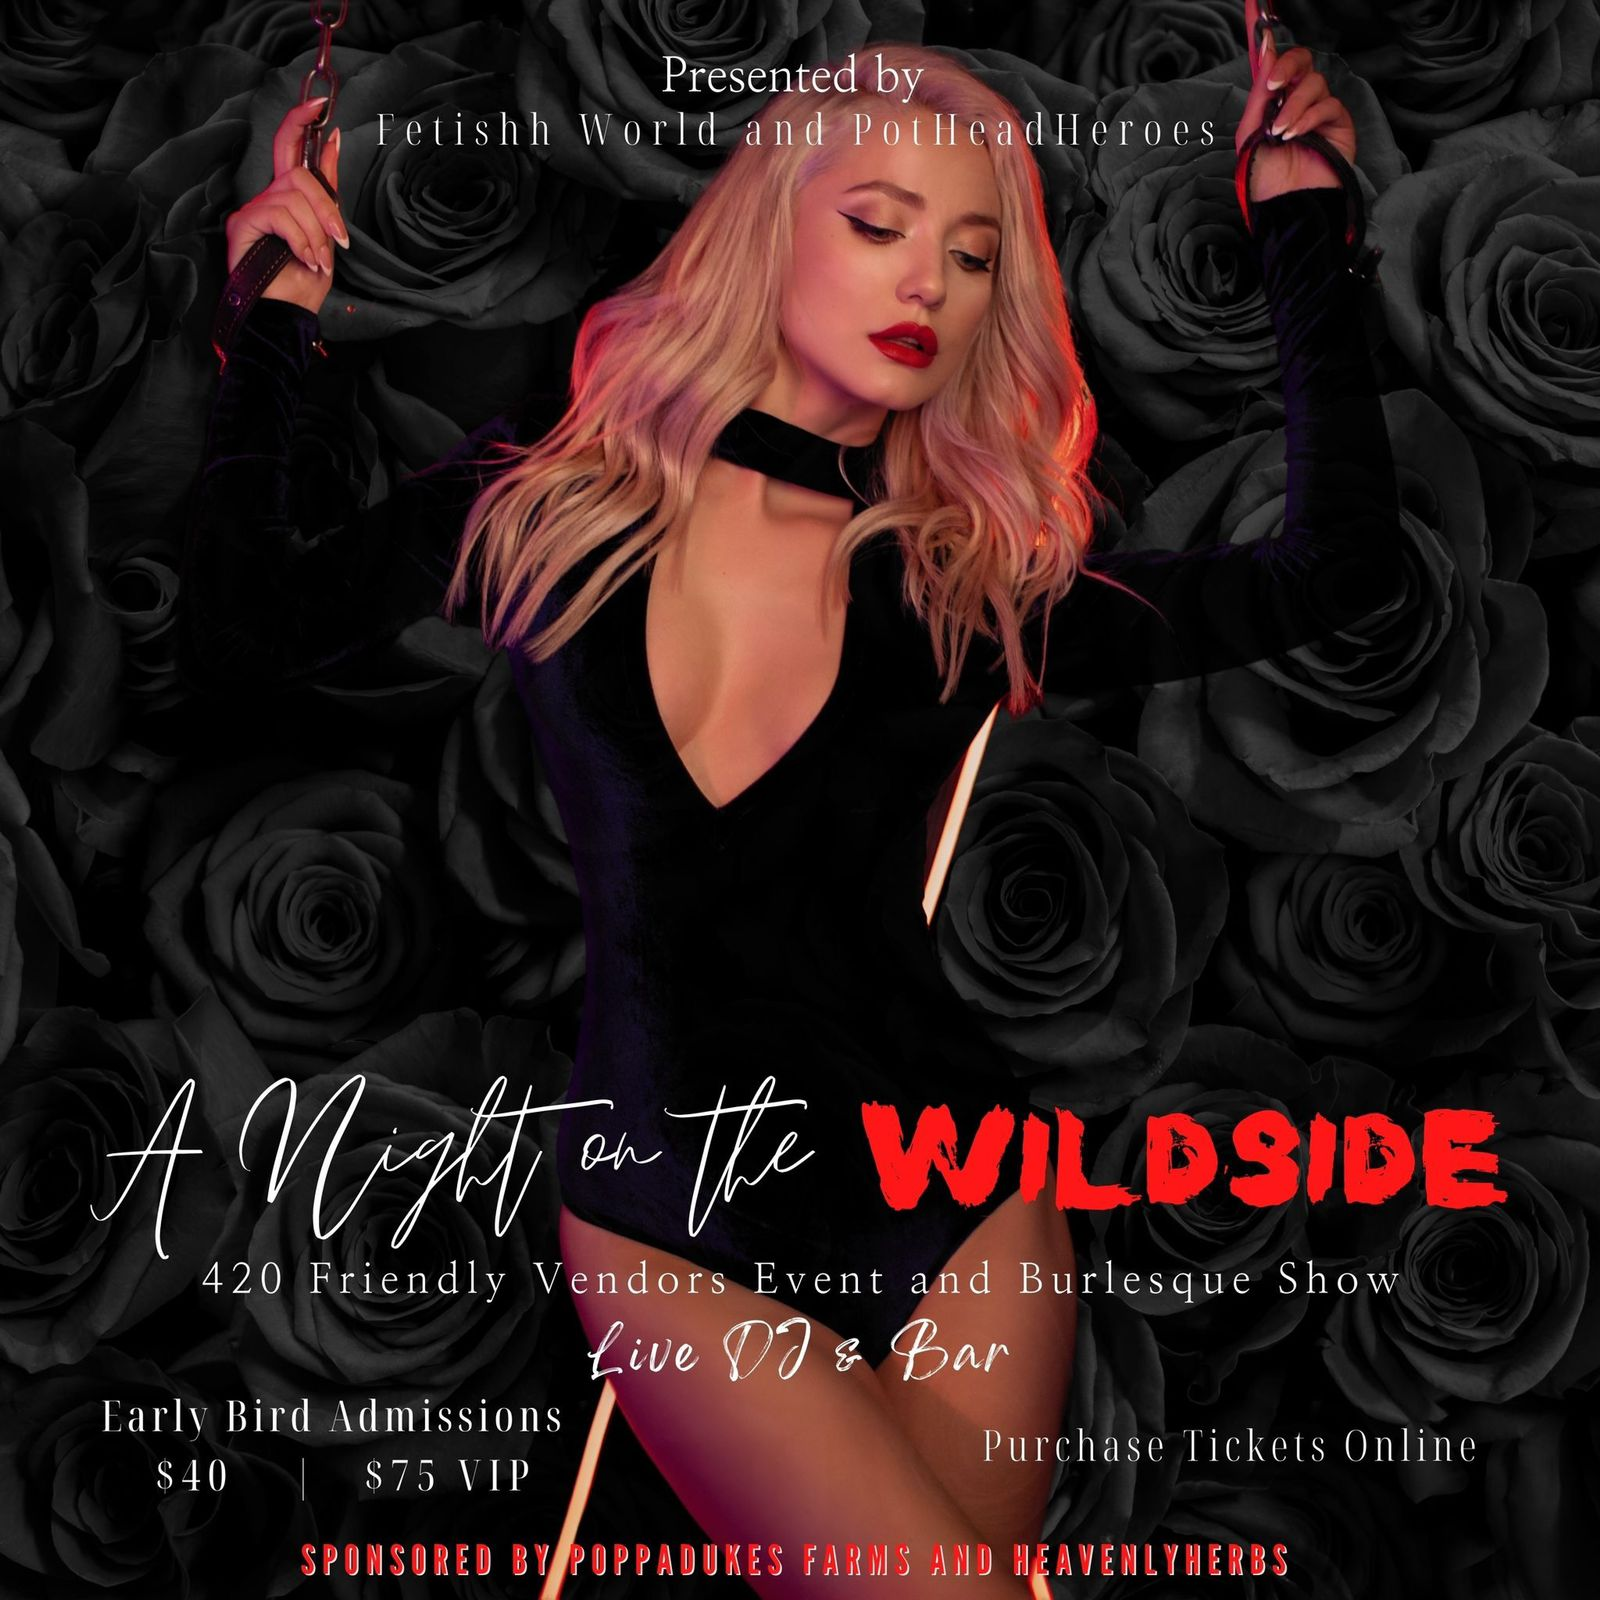 A Night on the Wild Side is a 420-Friendly Burlesque Event.